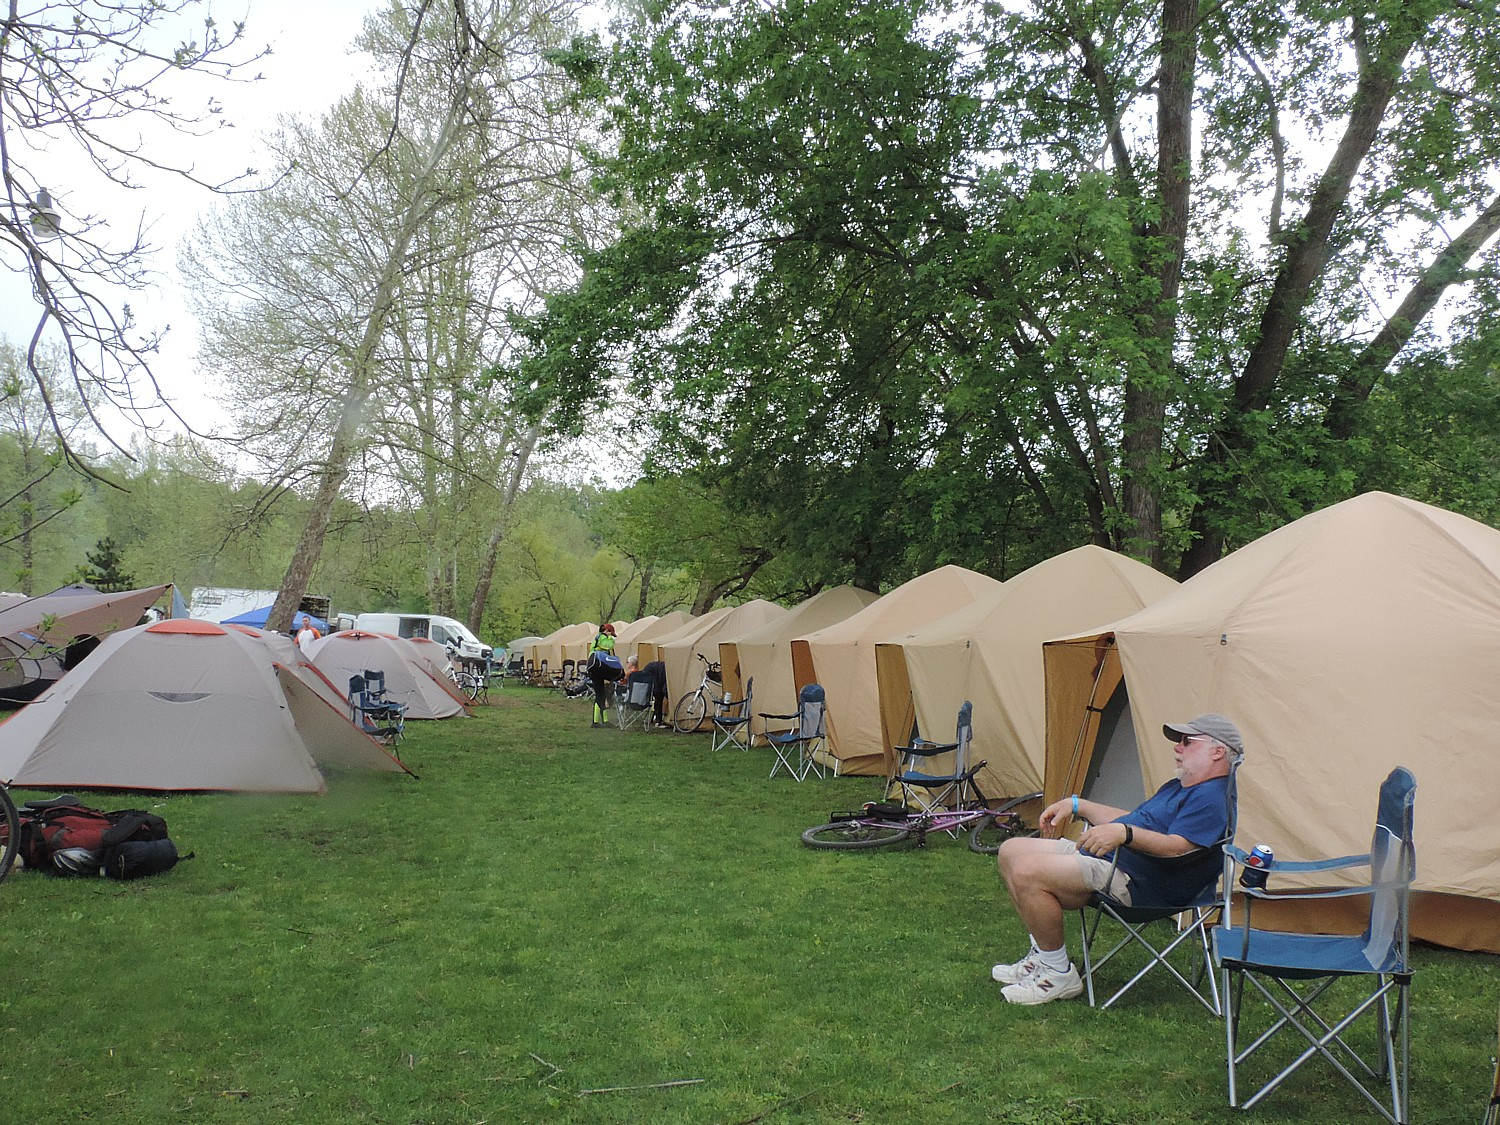 The end of our 33-mile ride on Day 2 of Rails-to-Trails Conservancy's Spring Sojourn on the Great Allegheny Passage takes us to the ROA camping resort in Adelaide, where Comfy Campers has already set up tents © 2016 Karen Rubin/goingplacesfarandnear.com